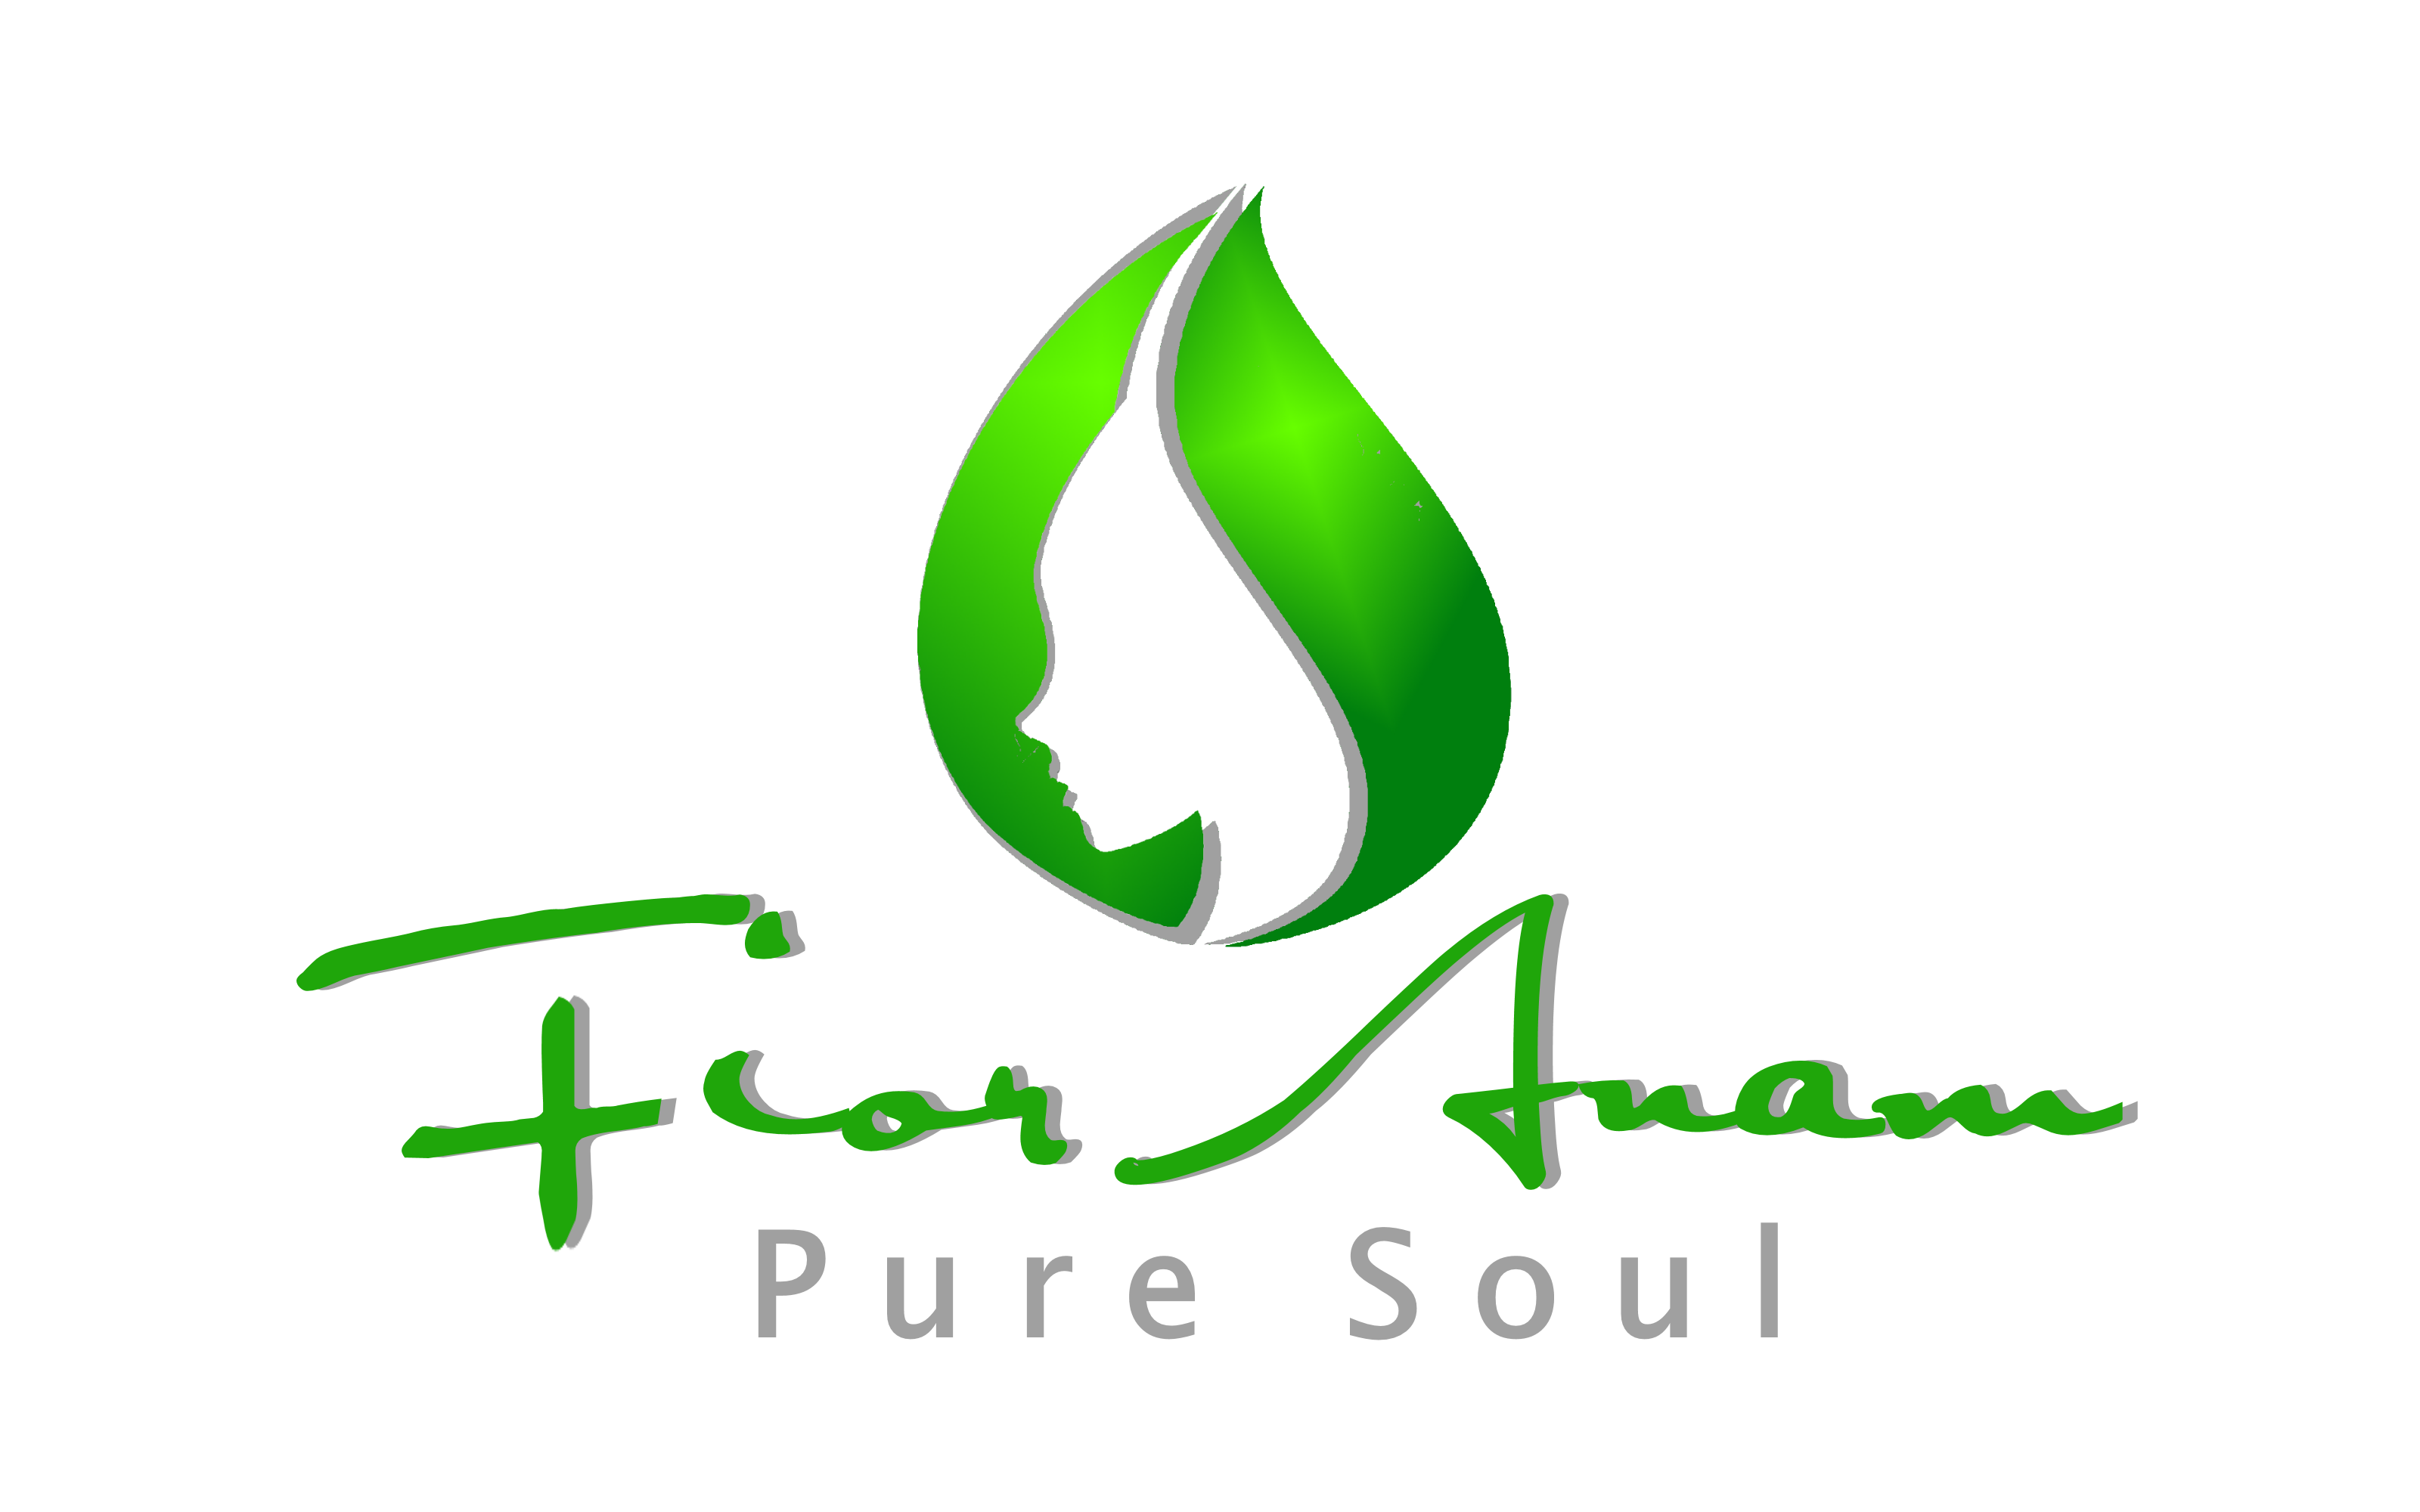 Logo Design by Roberto Bassi - Entry No. 317 in the Logo Design Contest Creative Logo Design for Fior Anam.